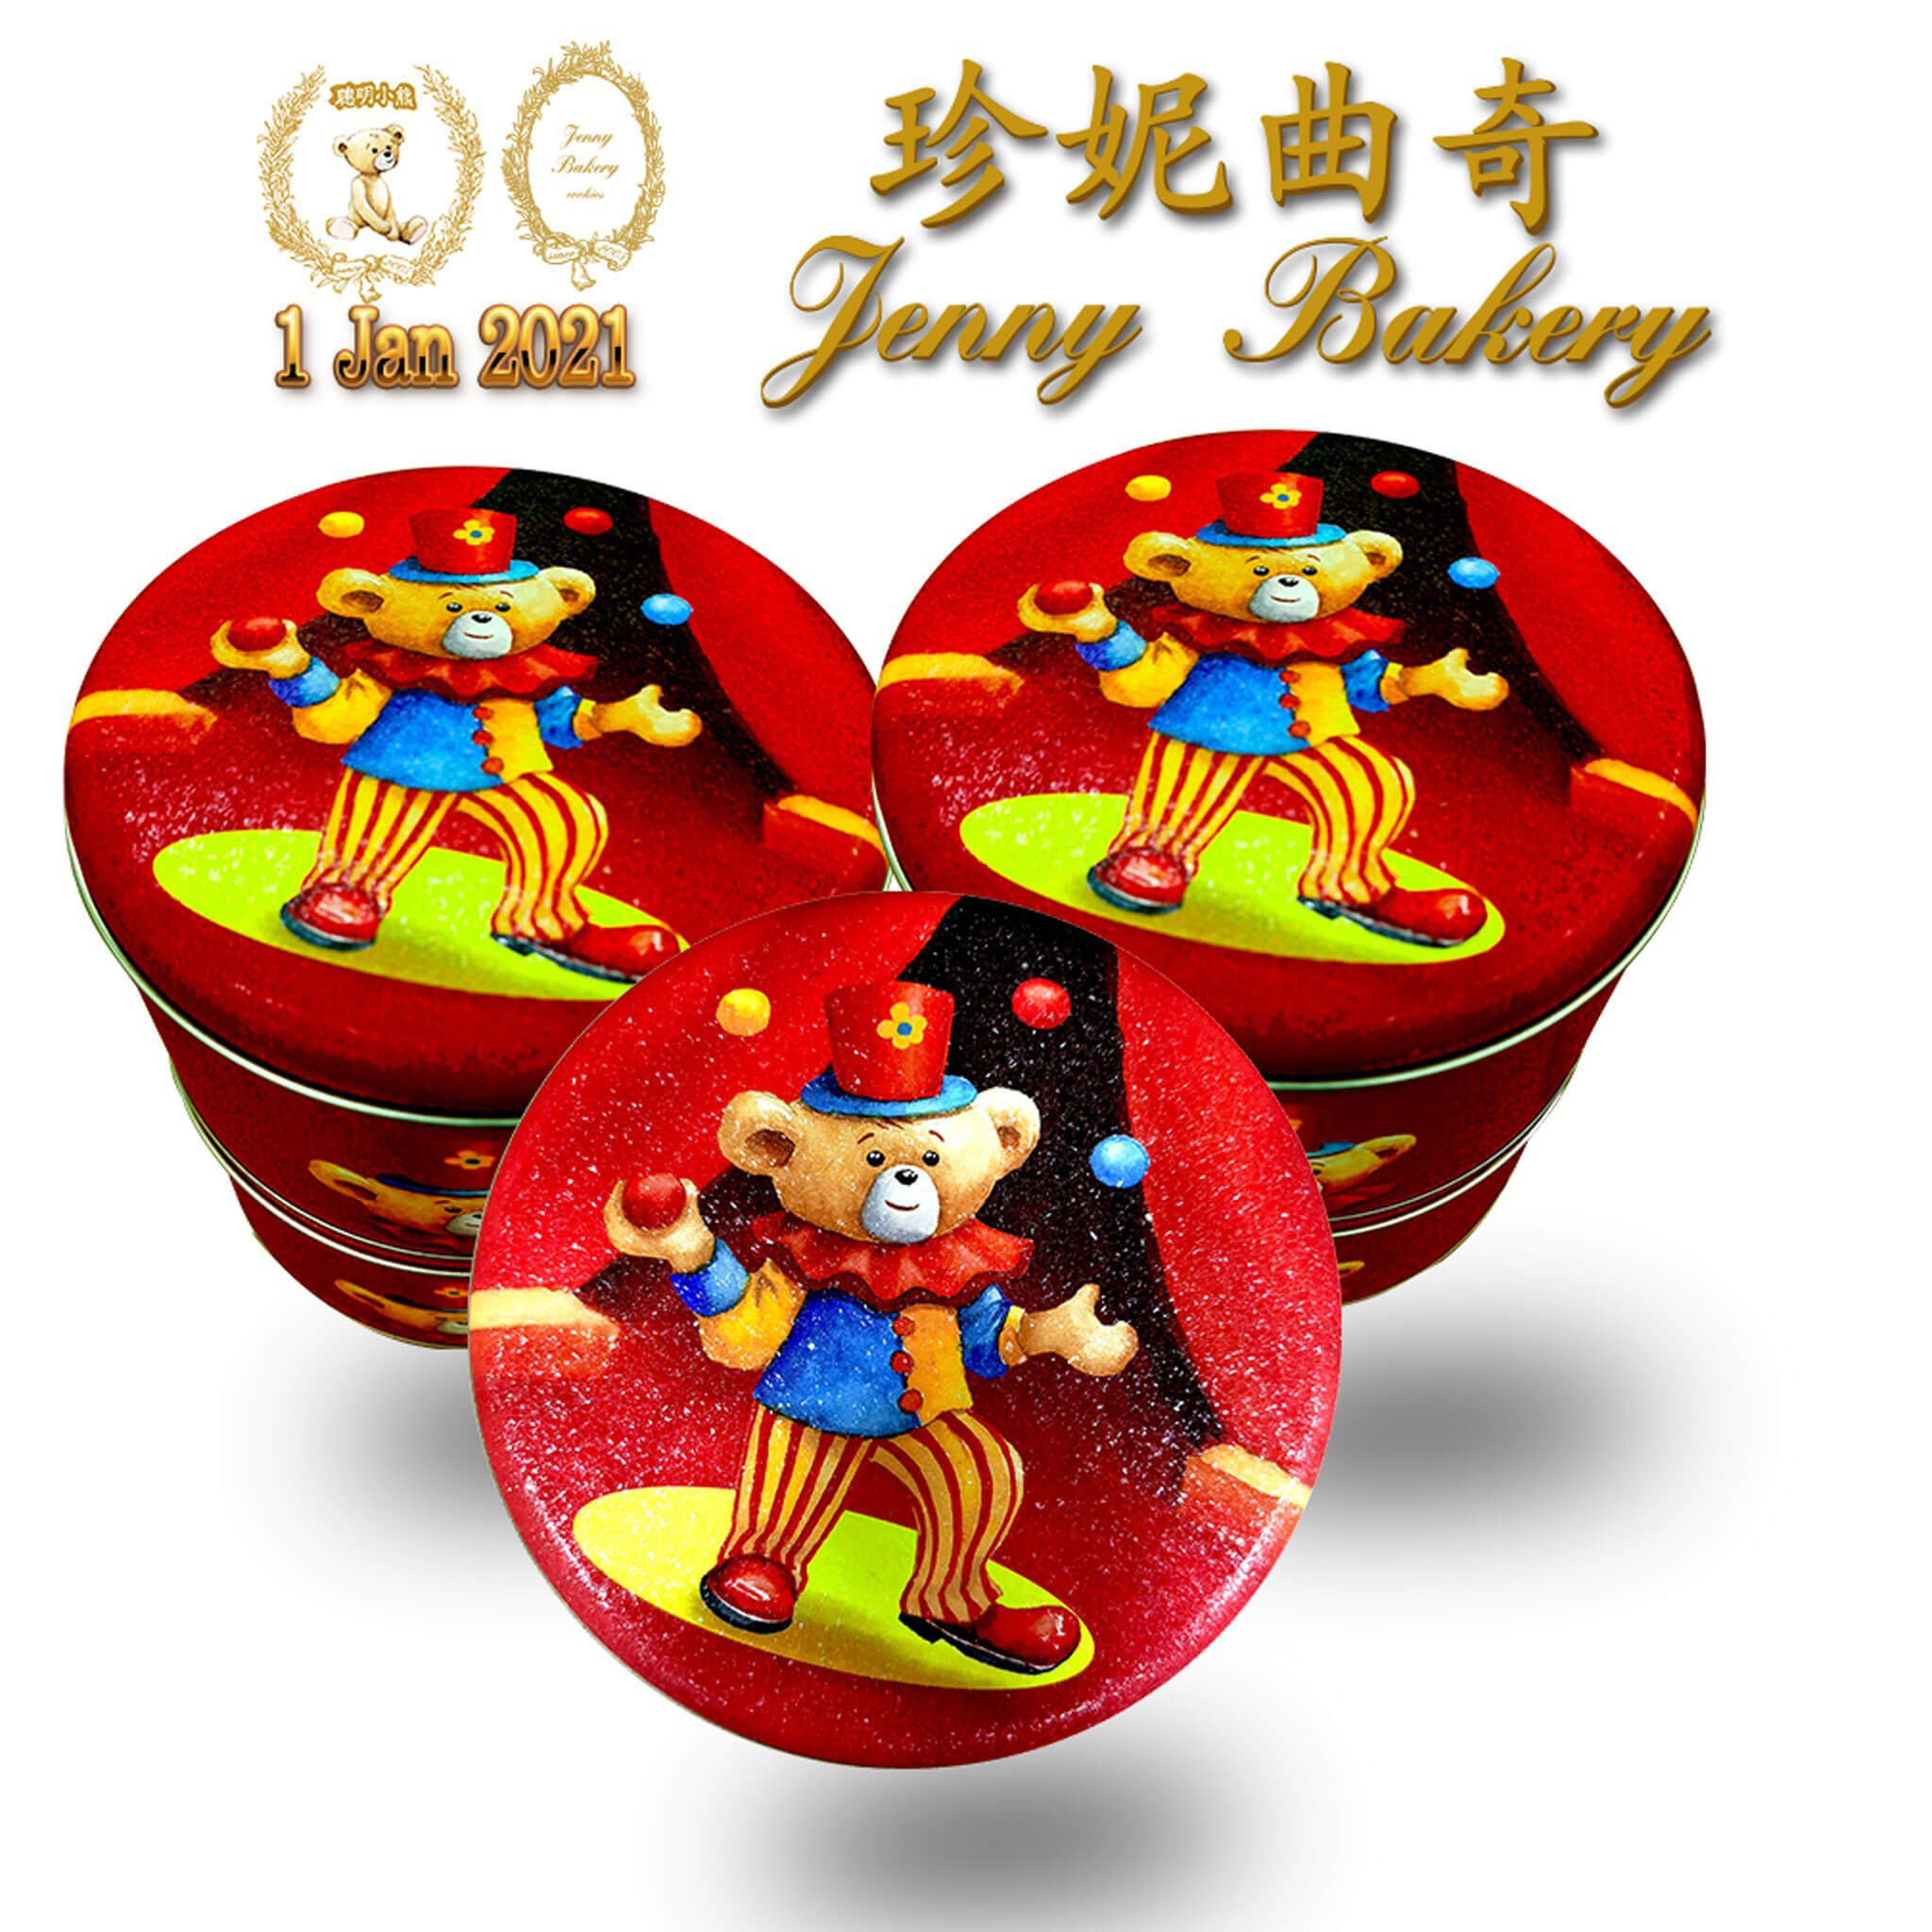 Juggling Clown | Design20201226 NewYear